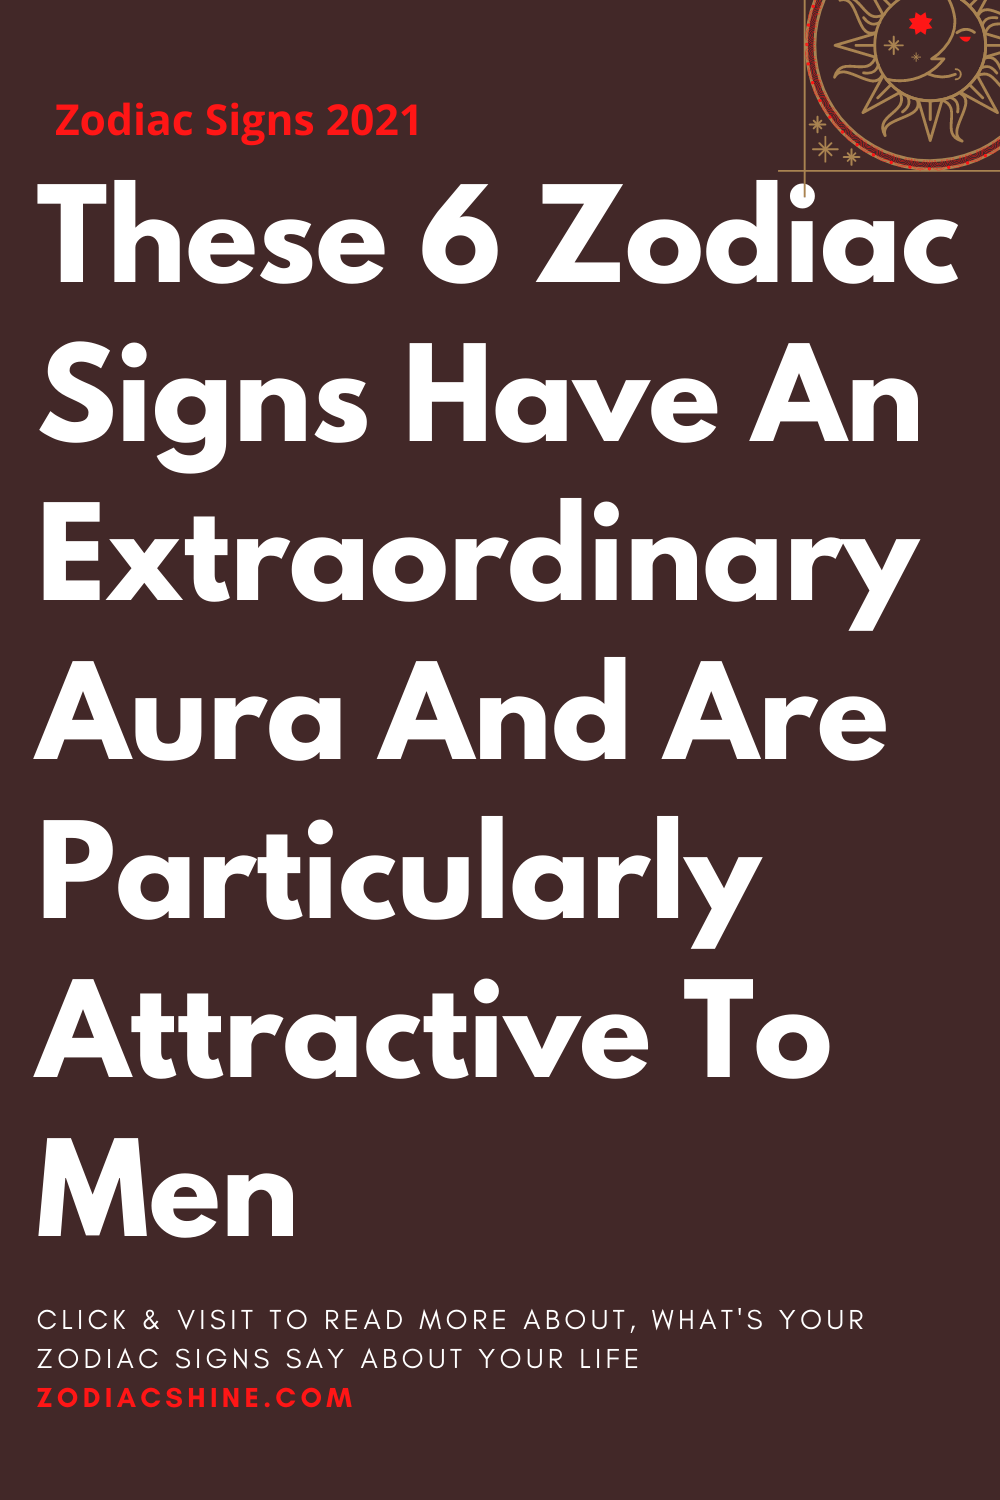 These 6 Zodiac Signs Have An Extraordinary Aura And Are Particularly Attractive To Men